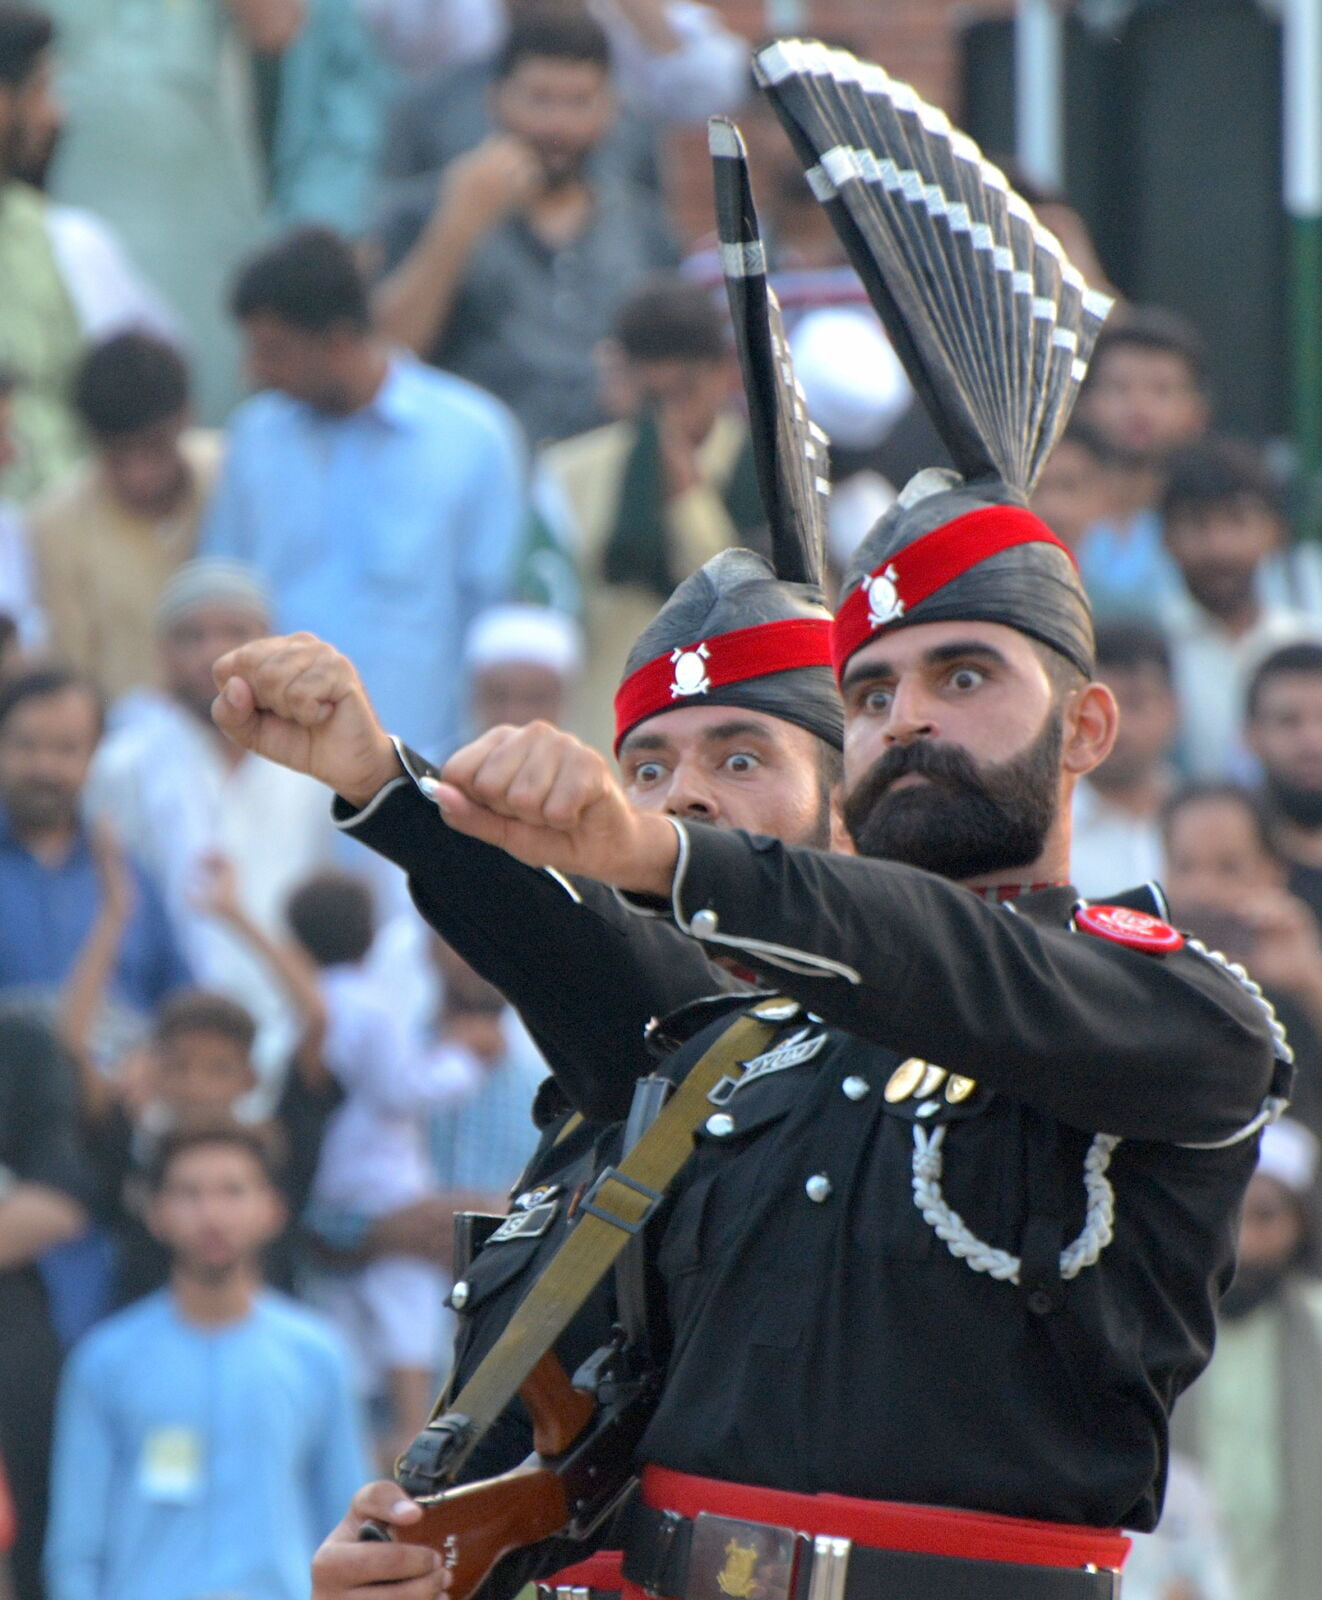 wagah-border-pakistan-officers-eyes-out